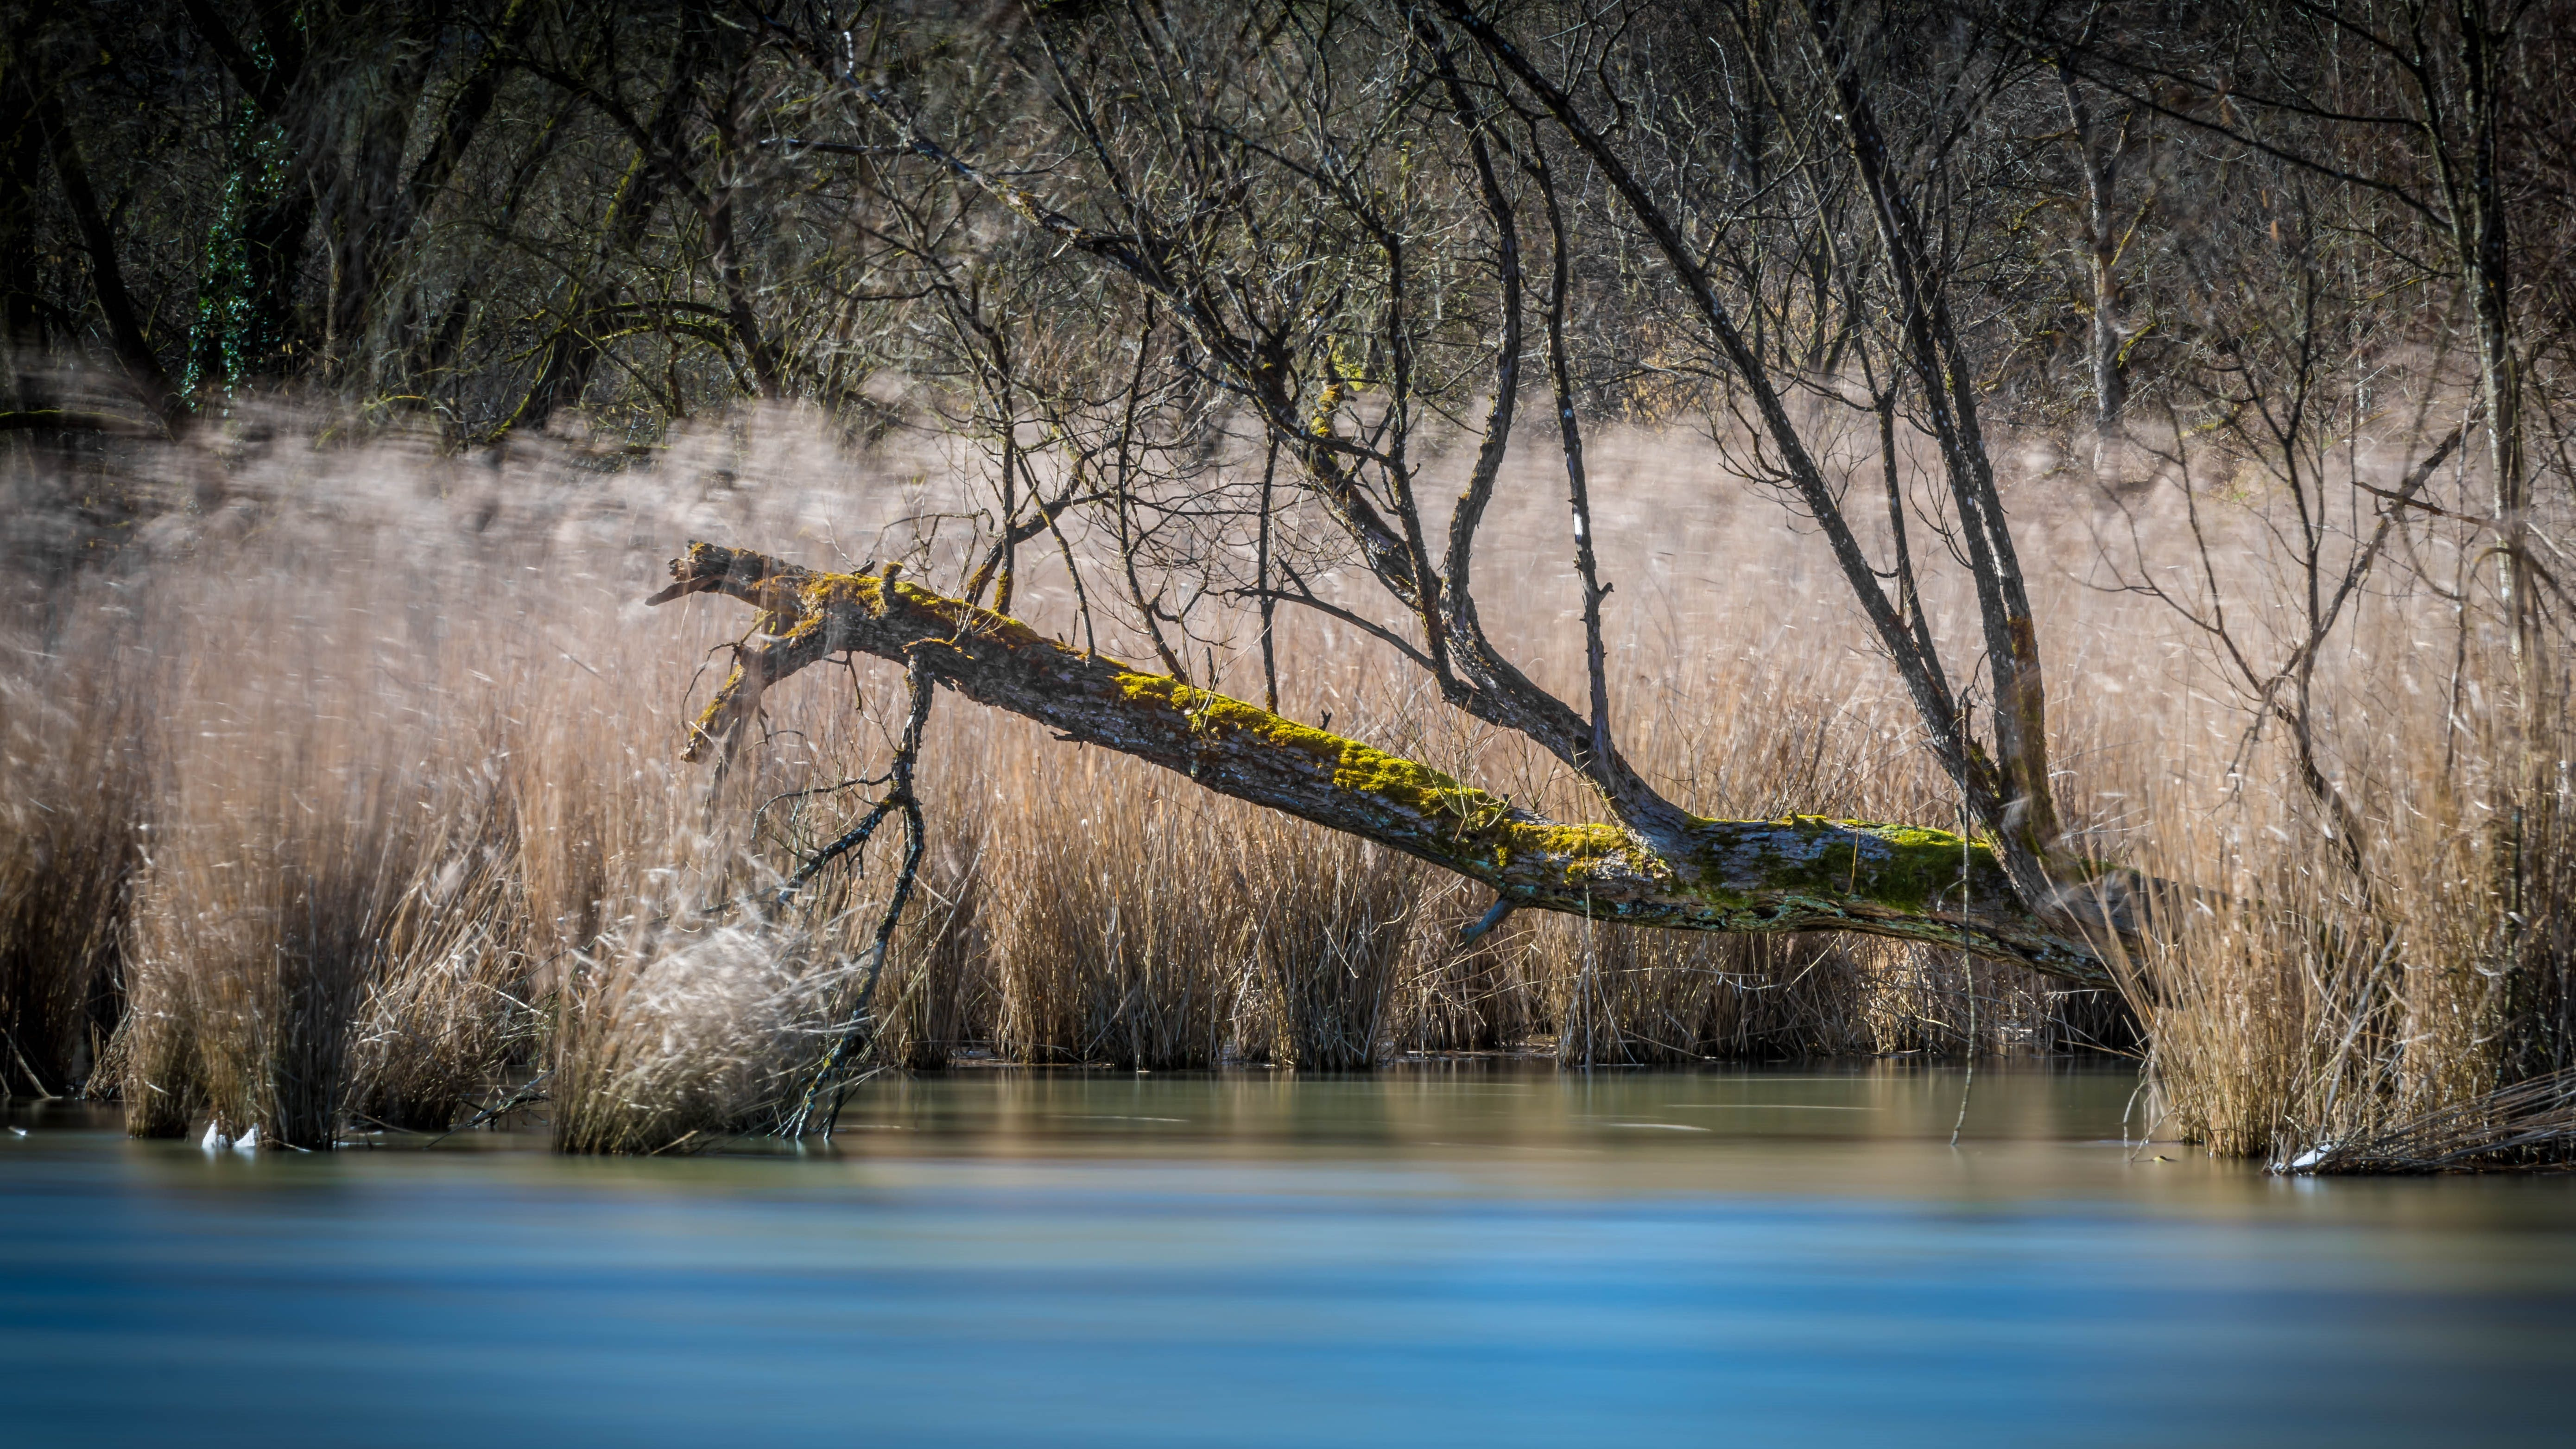 Dead Tree By The River